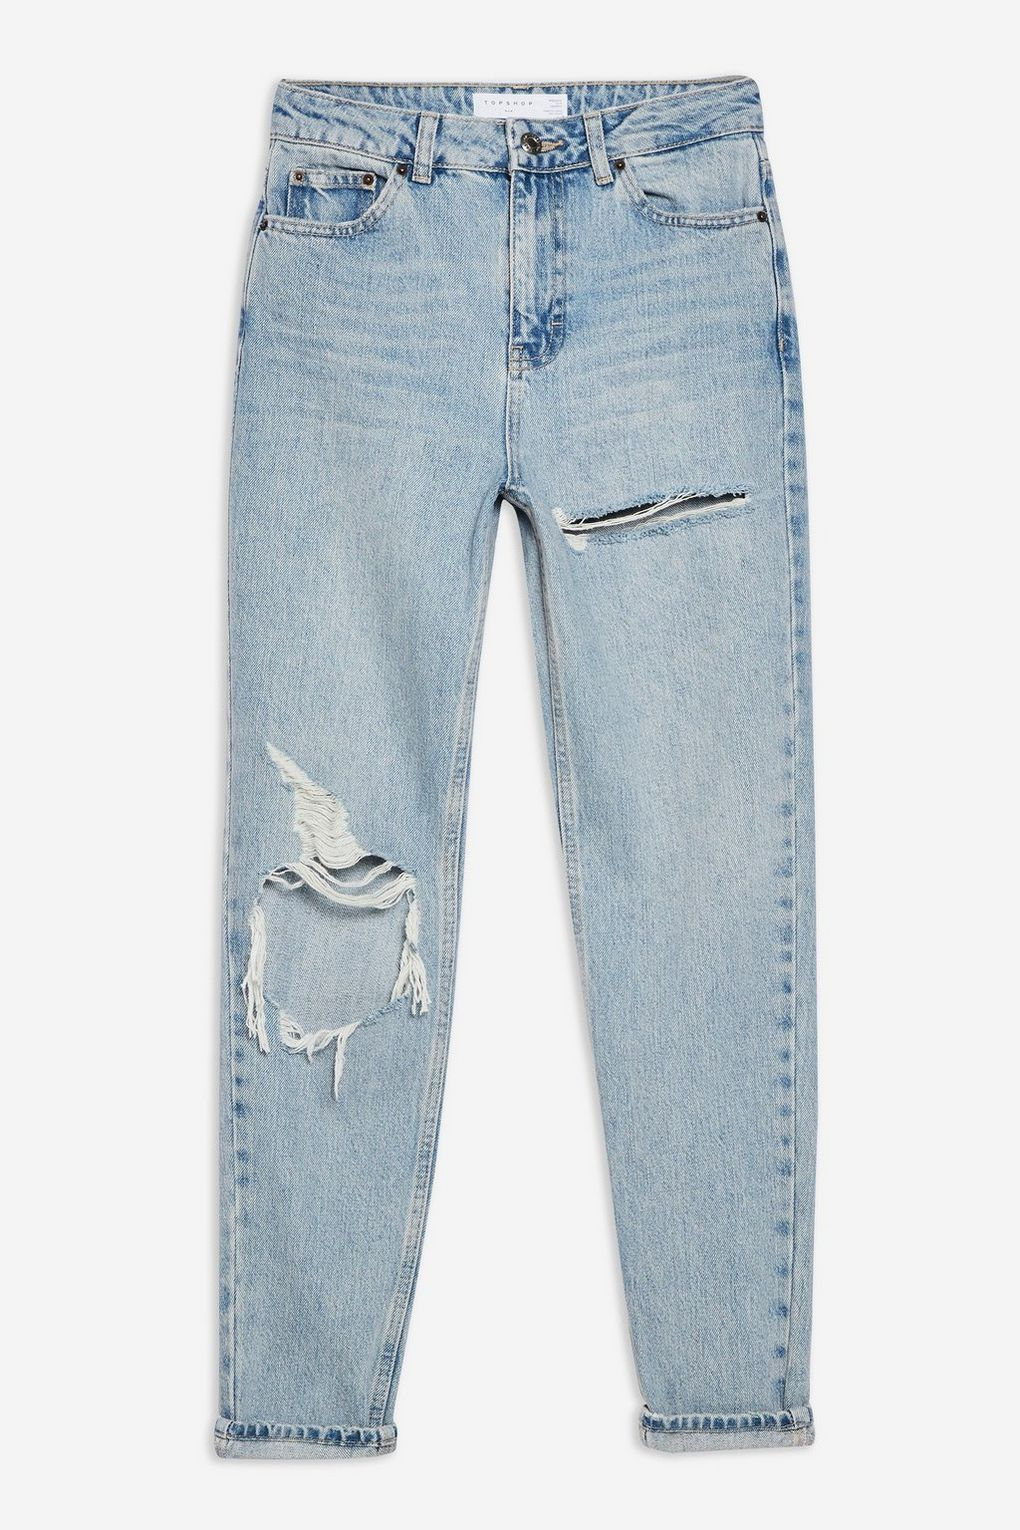 TOPSHOP BLEACH WILLOW RIP MOM JEANS - RIPPED JEANS